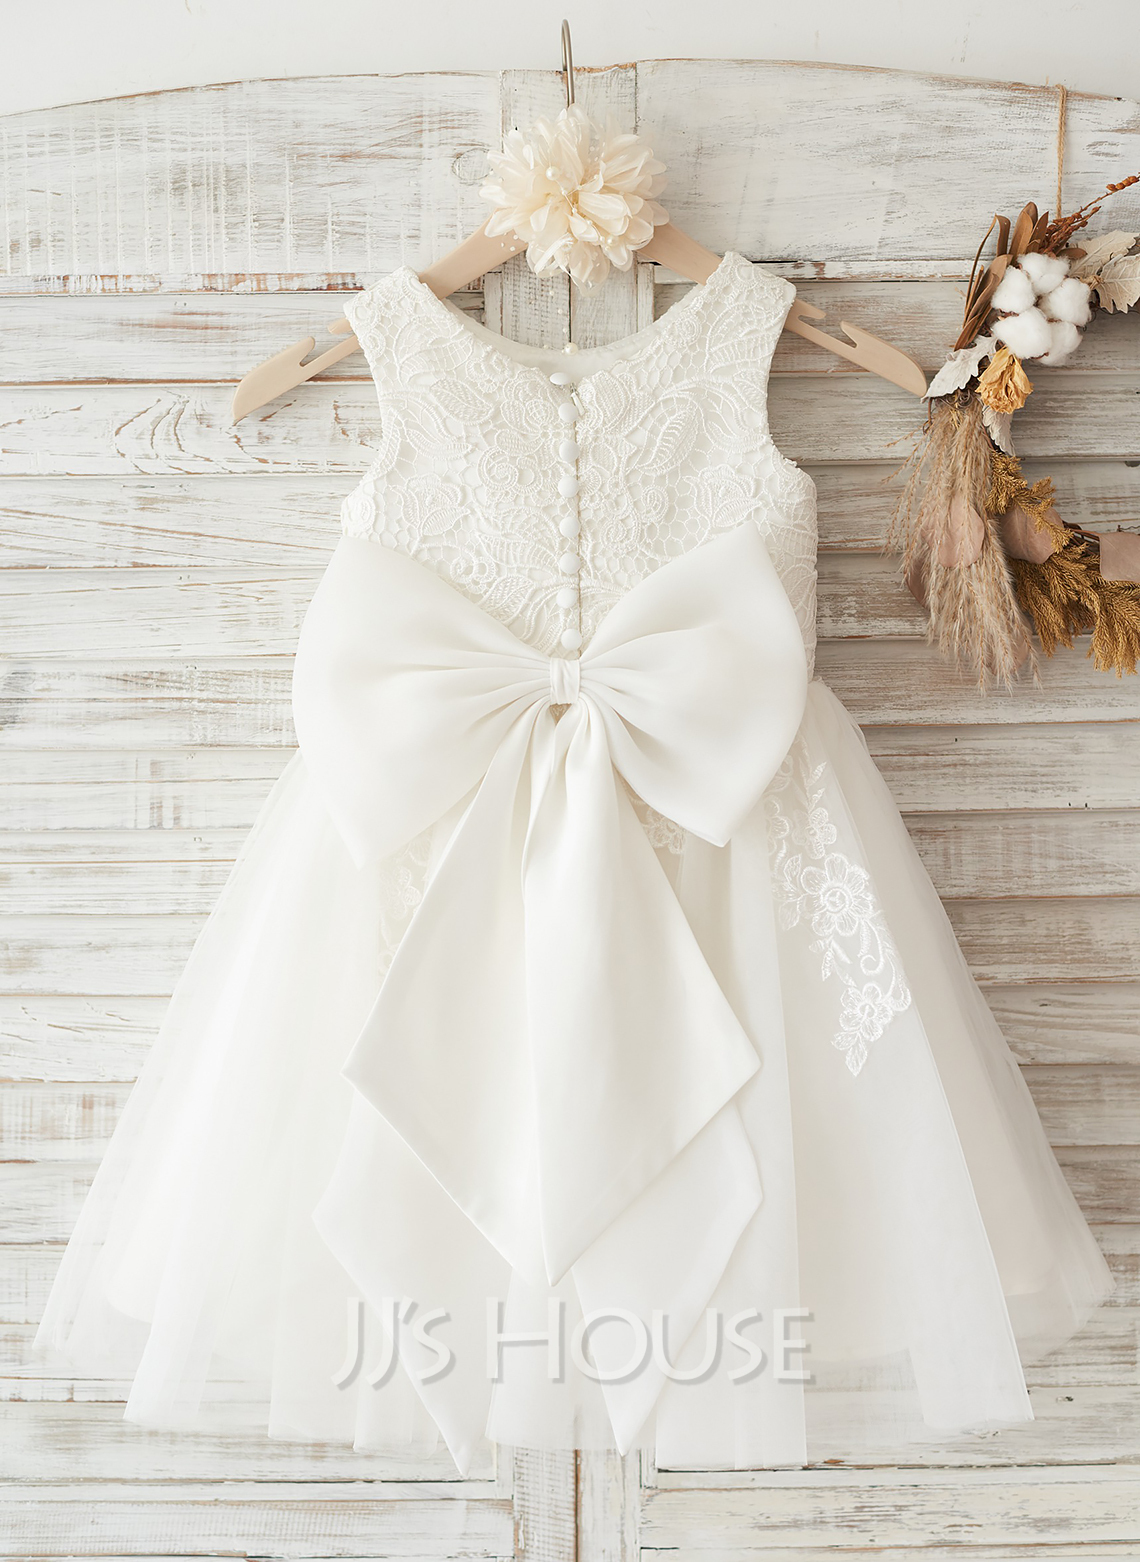 A-Line/Princess Knee-length Flower Girl Dress - Tulle/Lace ...